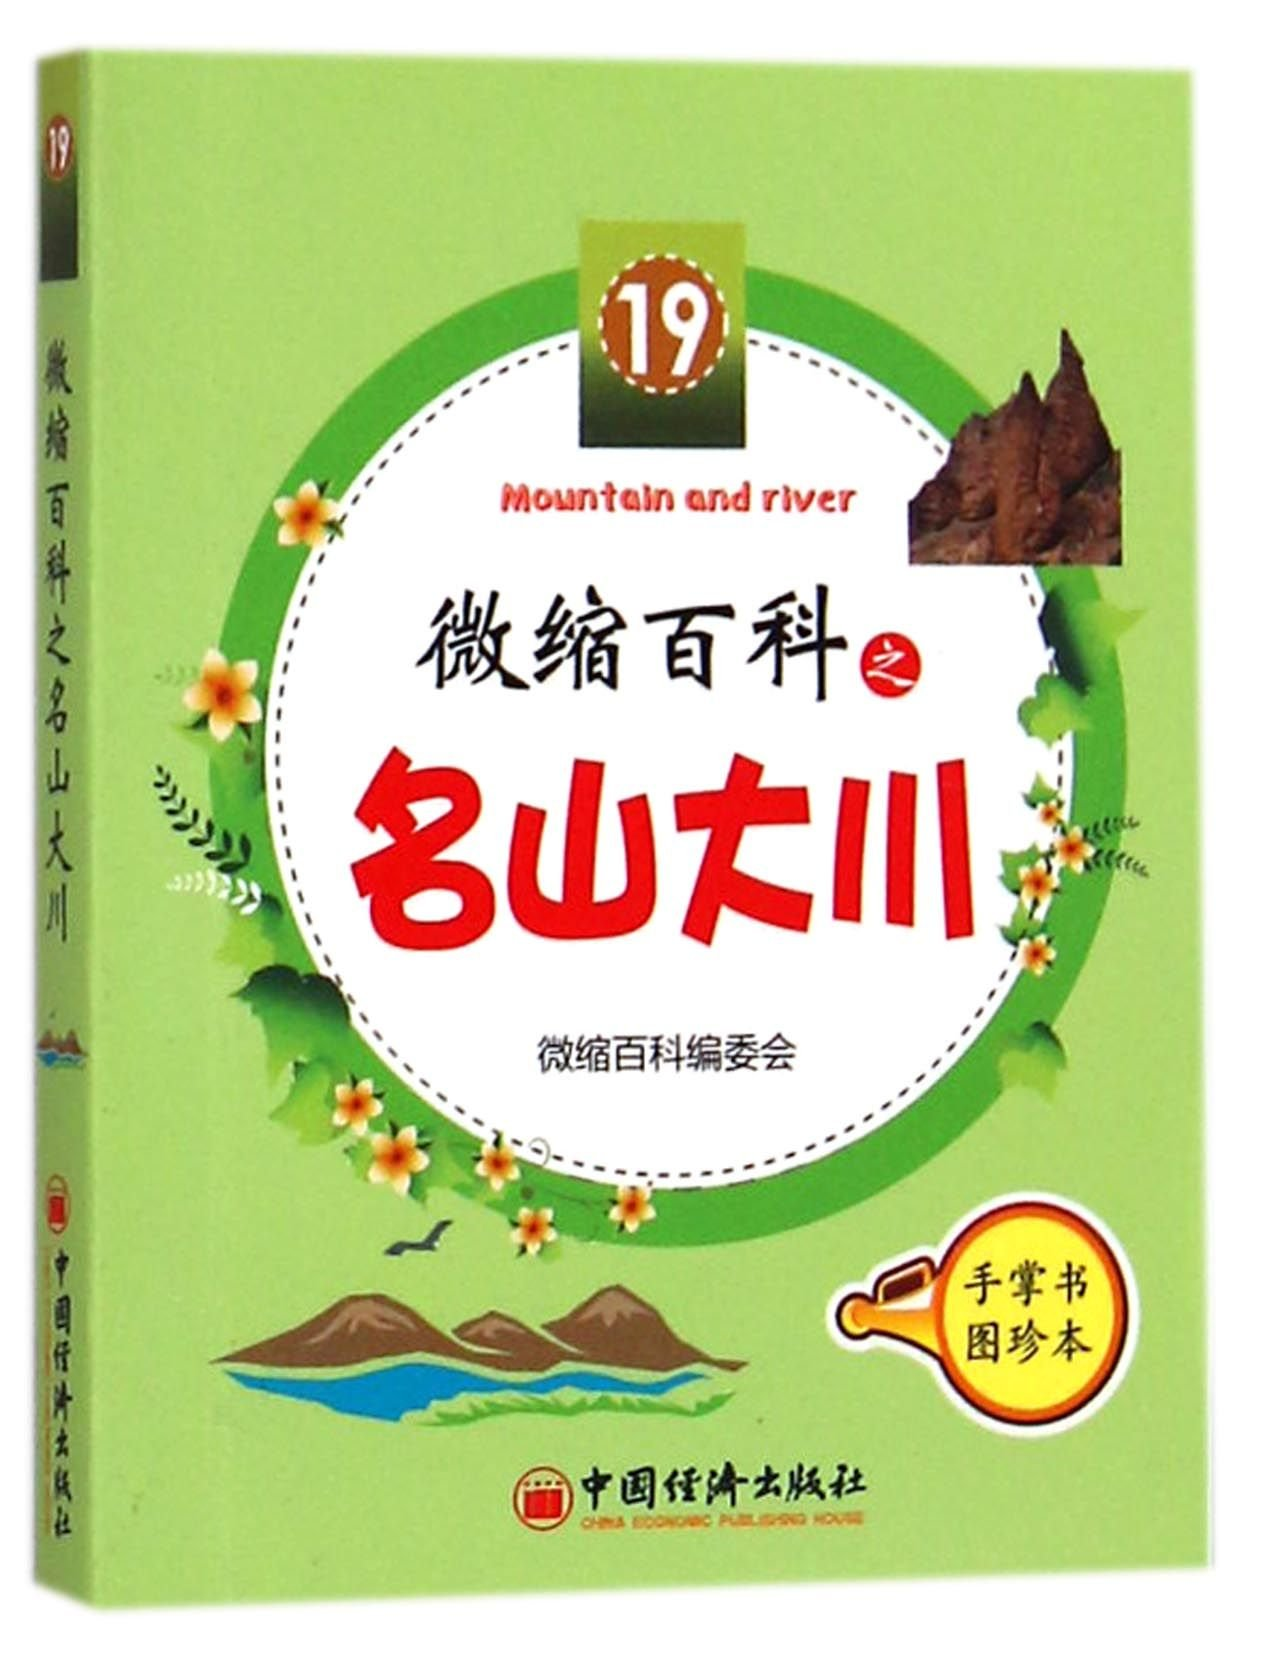 Well-know Mountains and Rivers (Chinese Edition) PDF